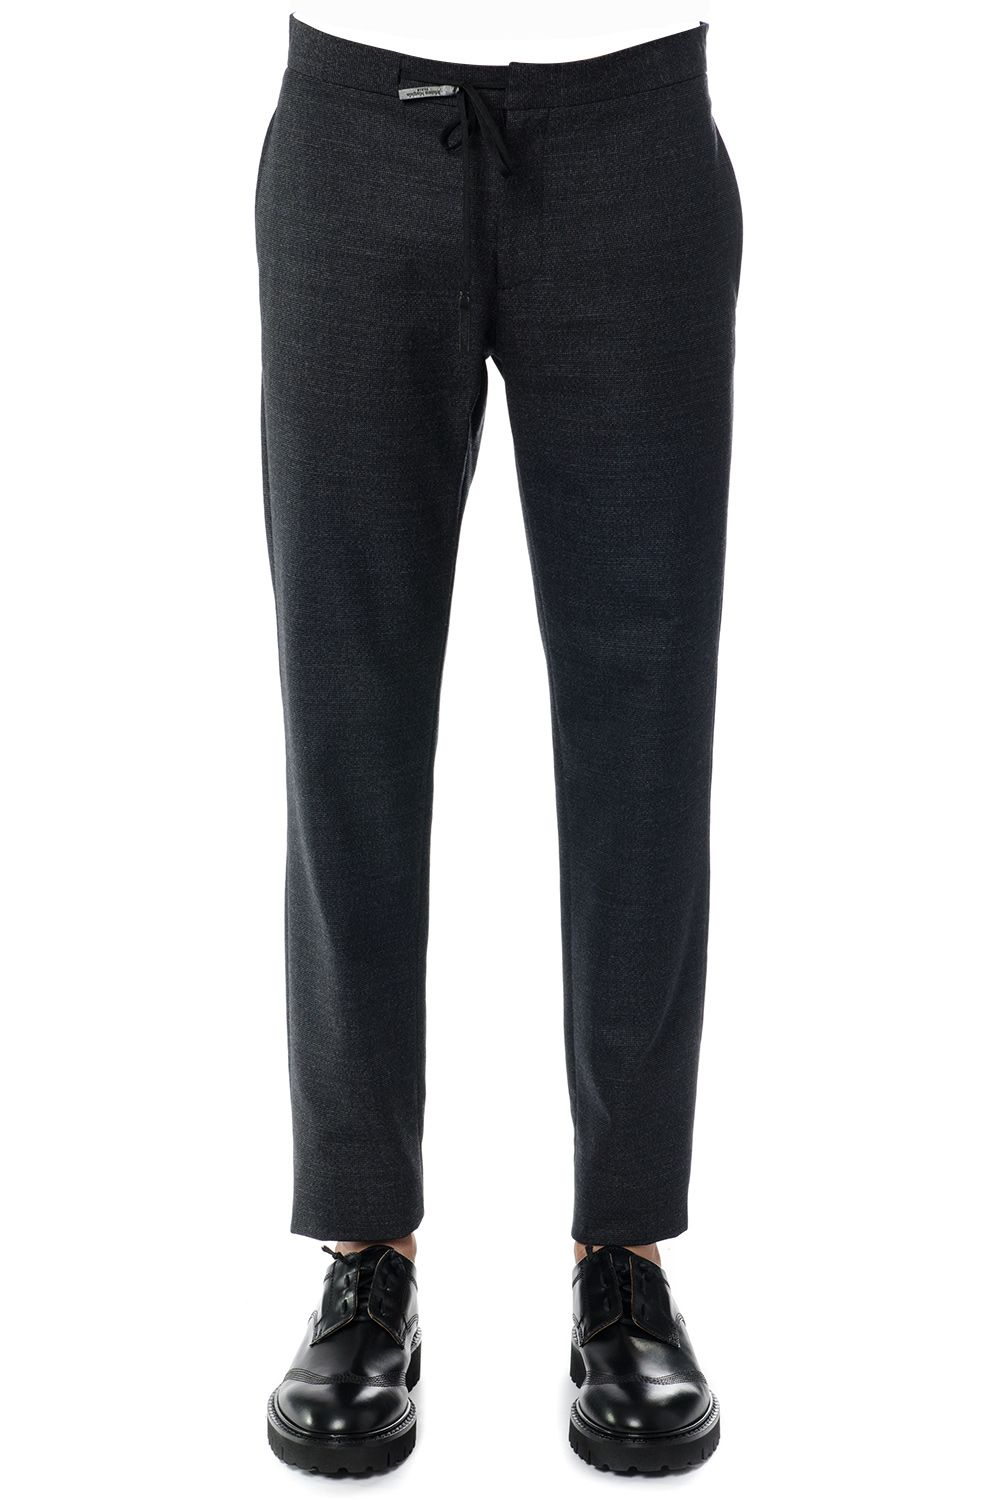 Maison Margiela Tailored Trousers